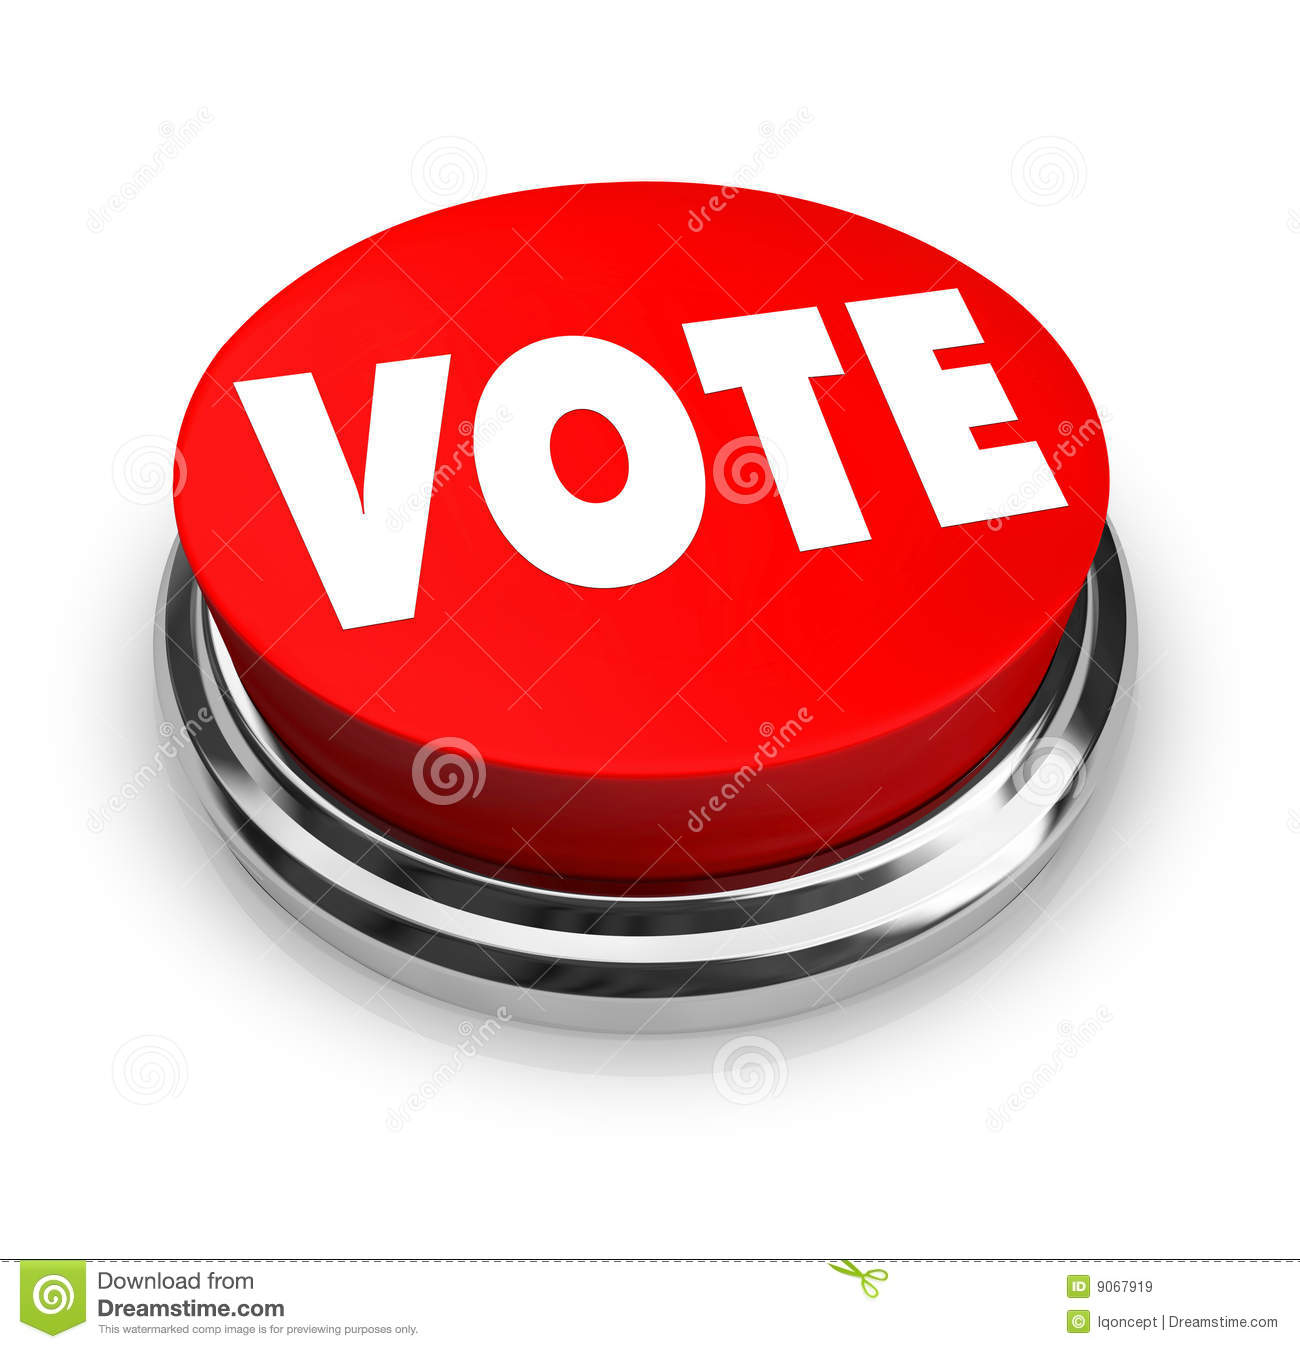 Vote Button Stock Photos, Images, & Pictures - 7,210 Images